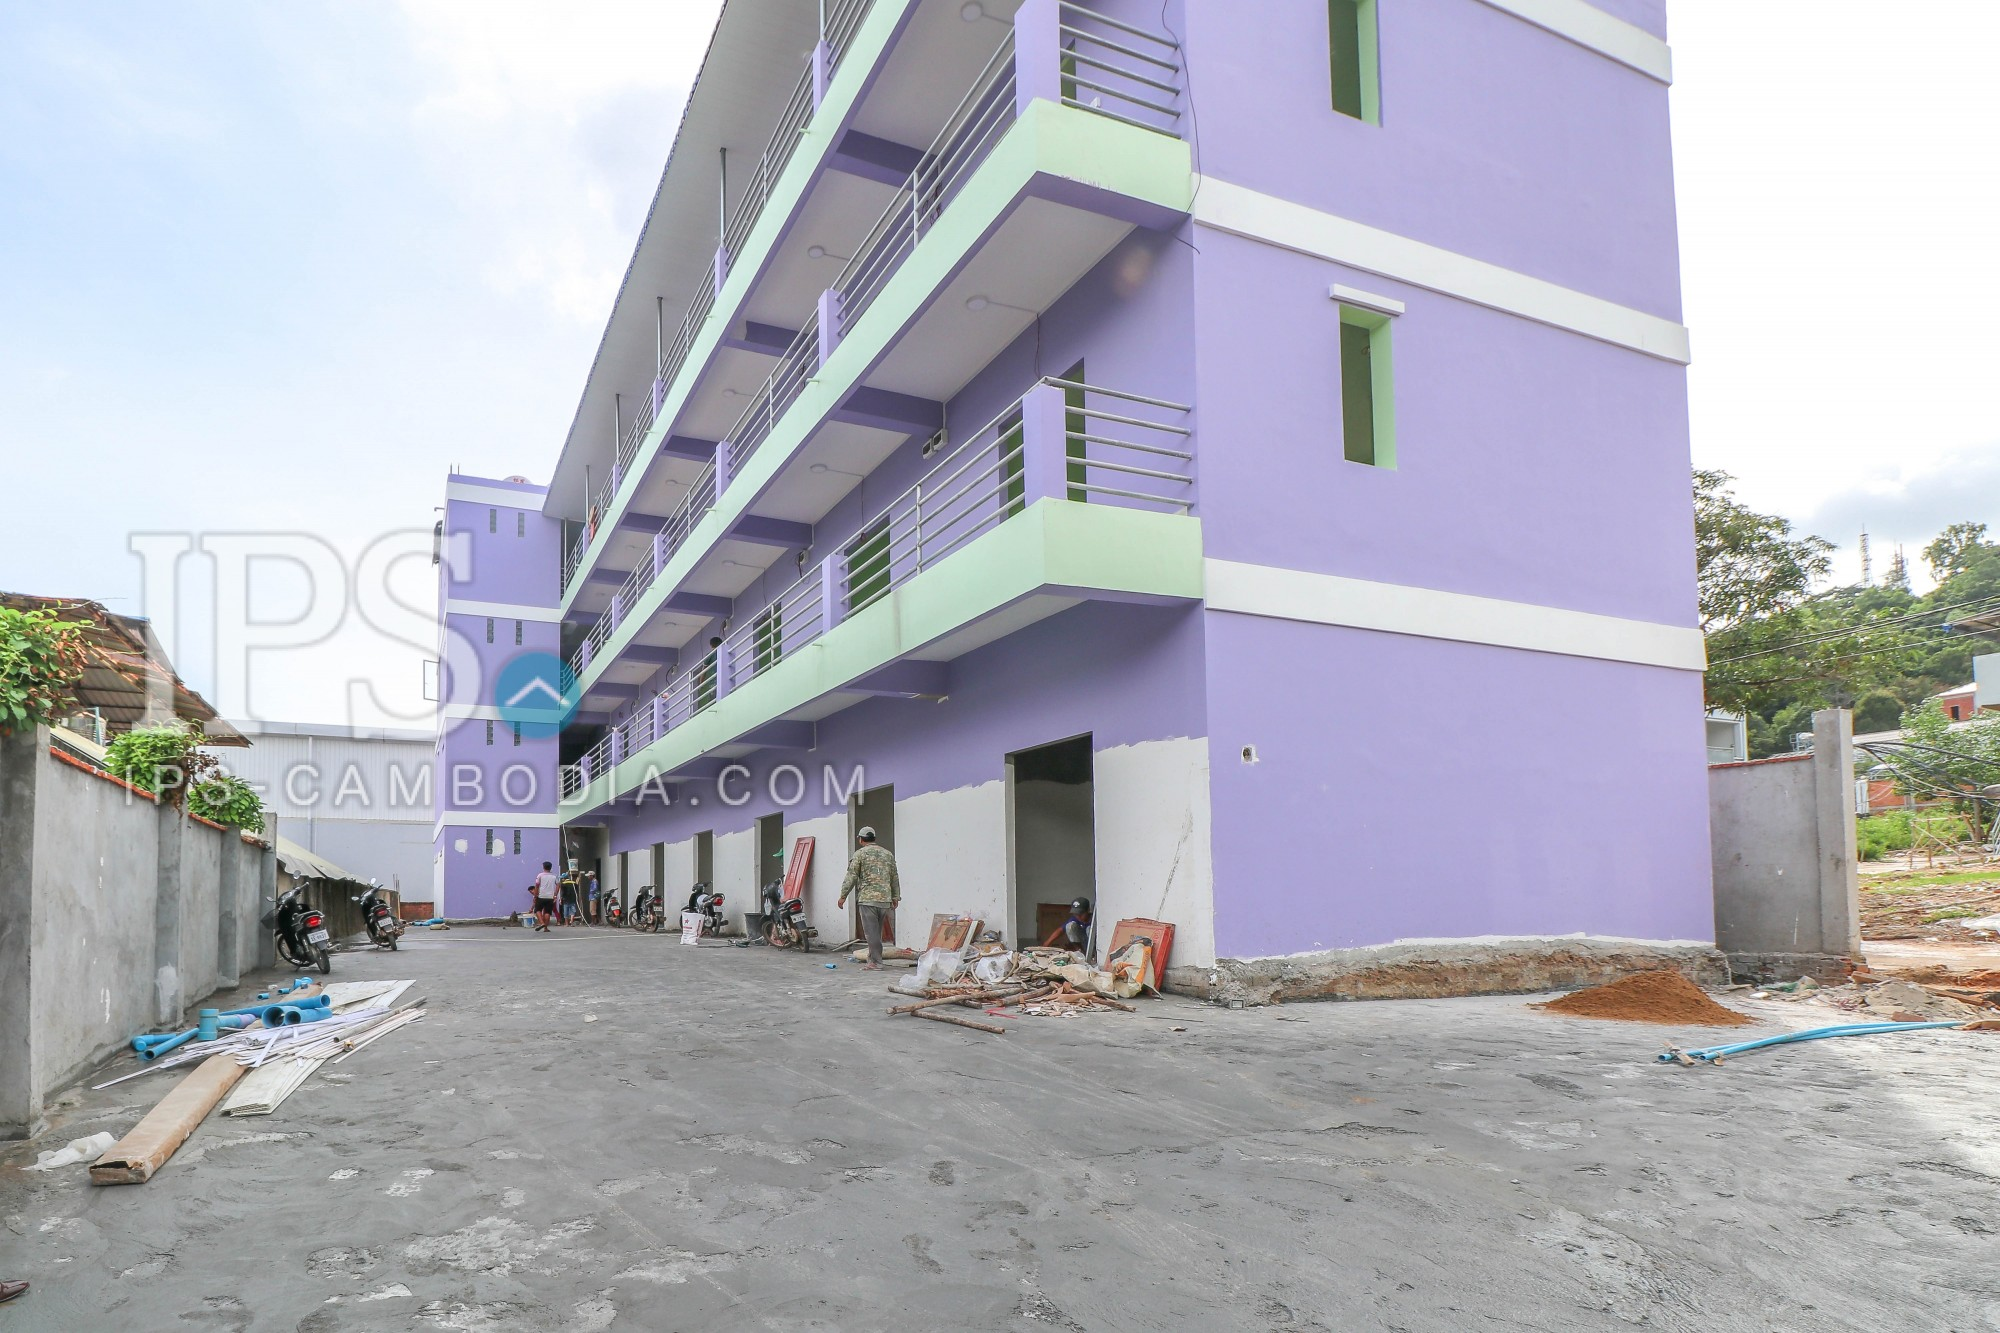 35 Bedrooms Building For Rent - Sihanoukville City